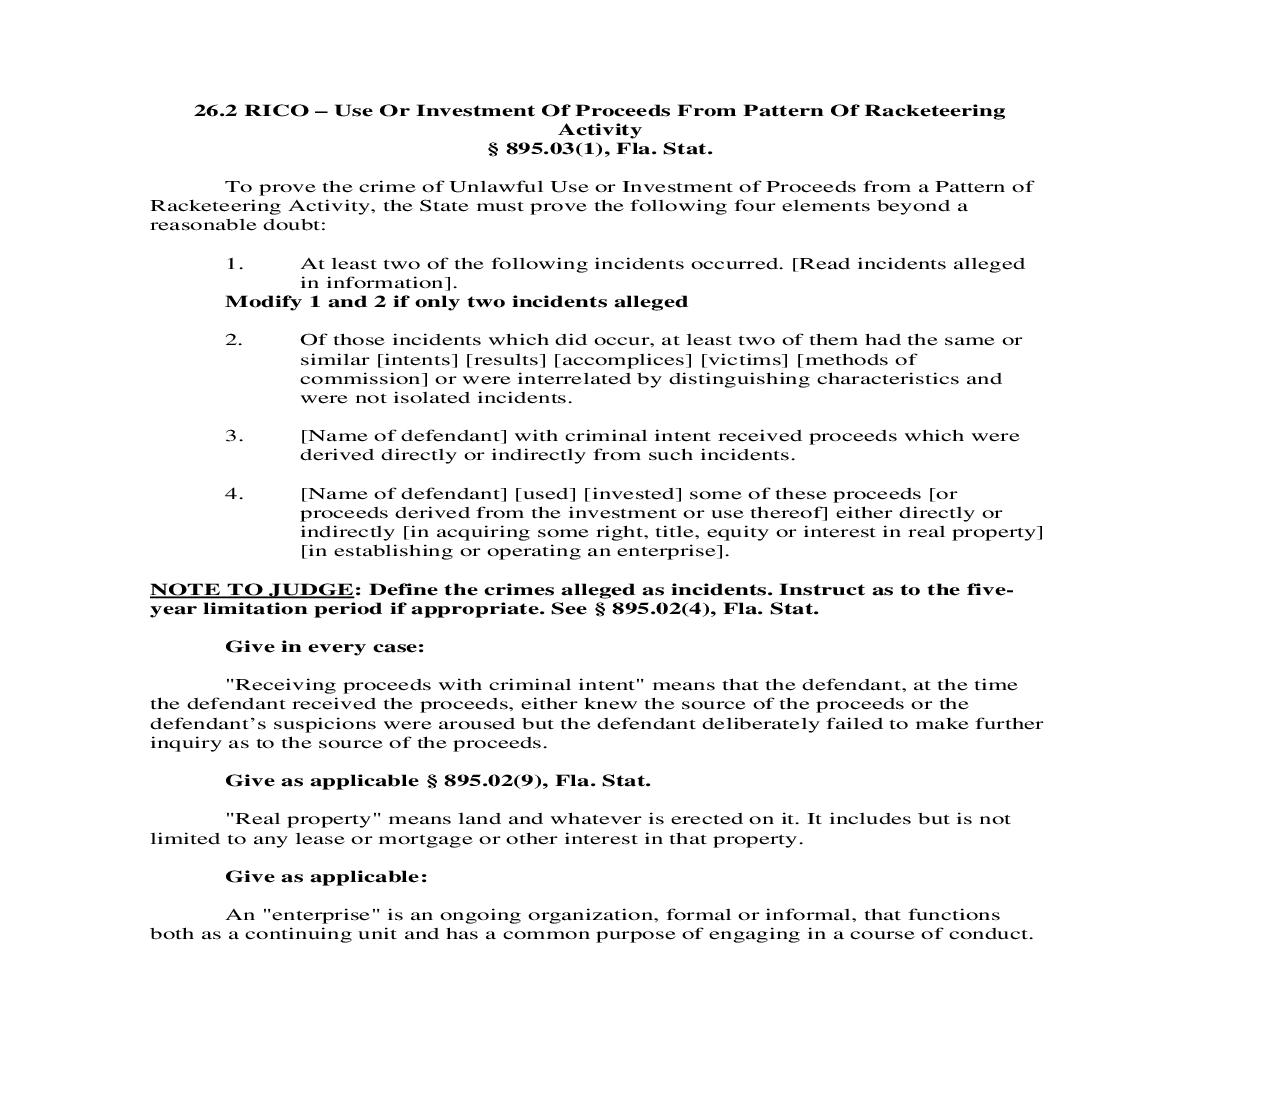 26.2. RICO - Use Or Investment Of Proceeds From Pattern Of Racketeering Activity   Pdf Doc Docx   Florida_JI